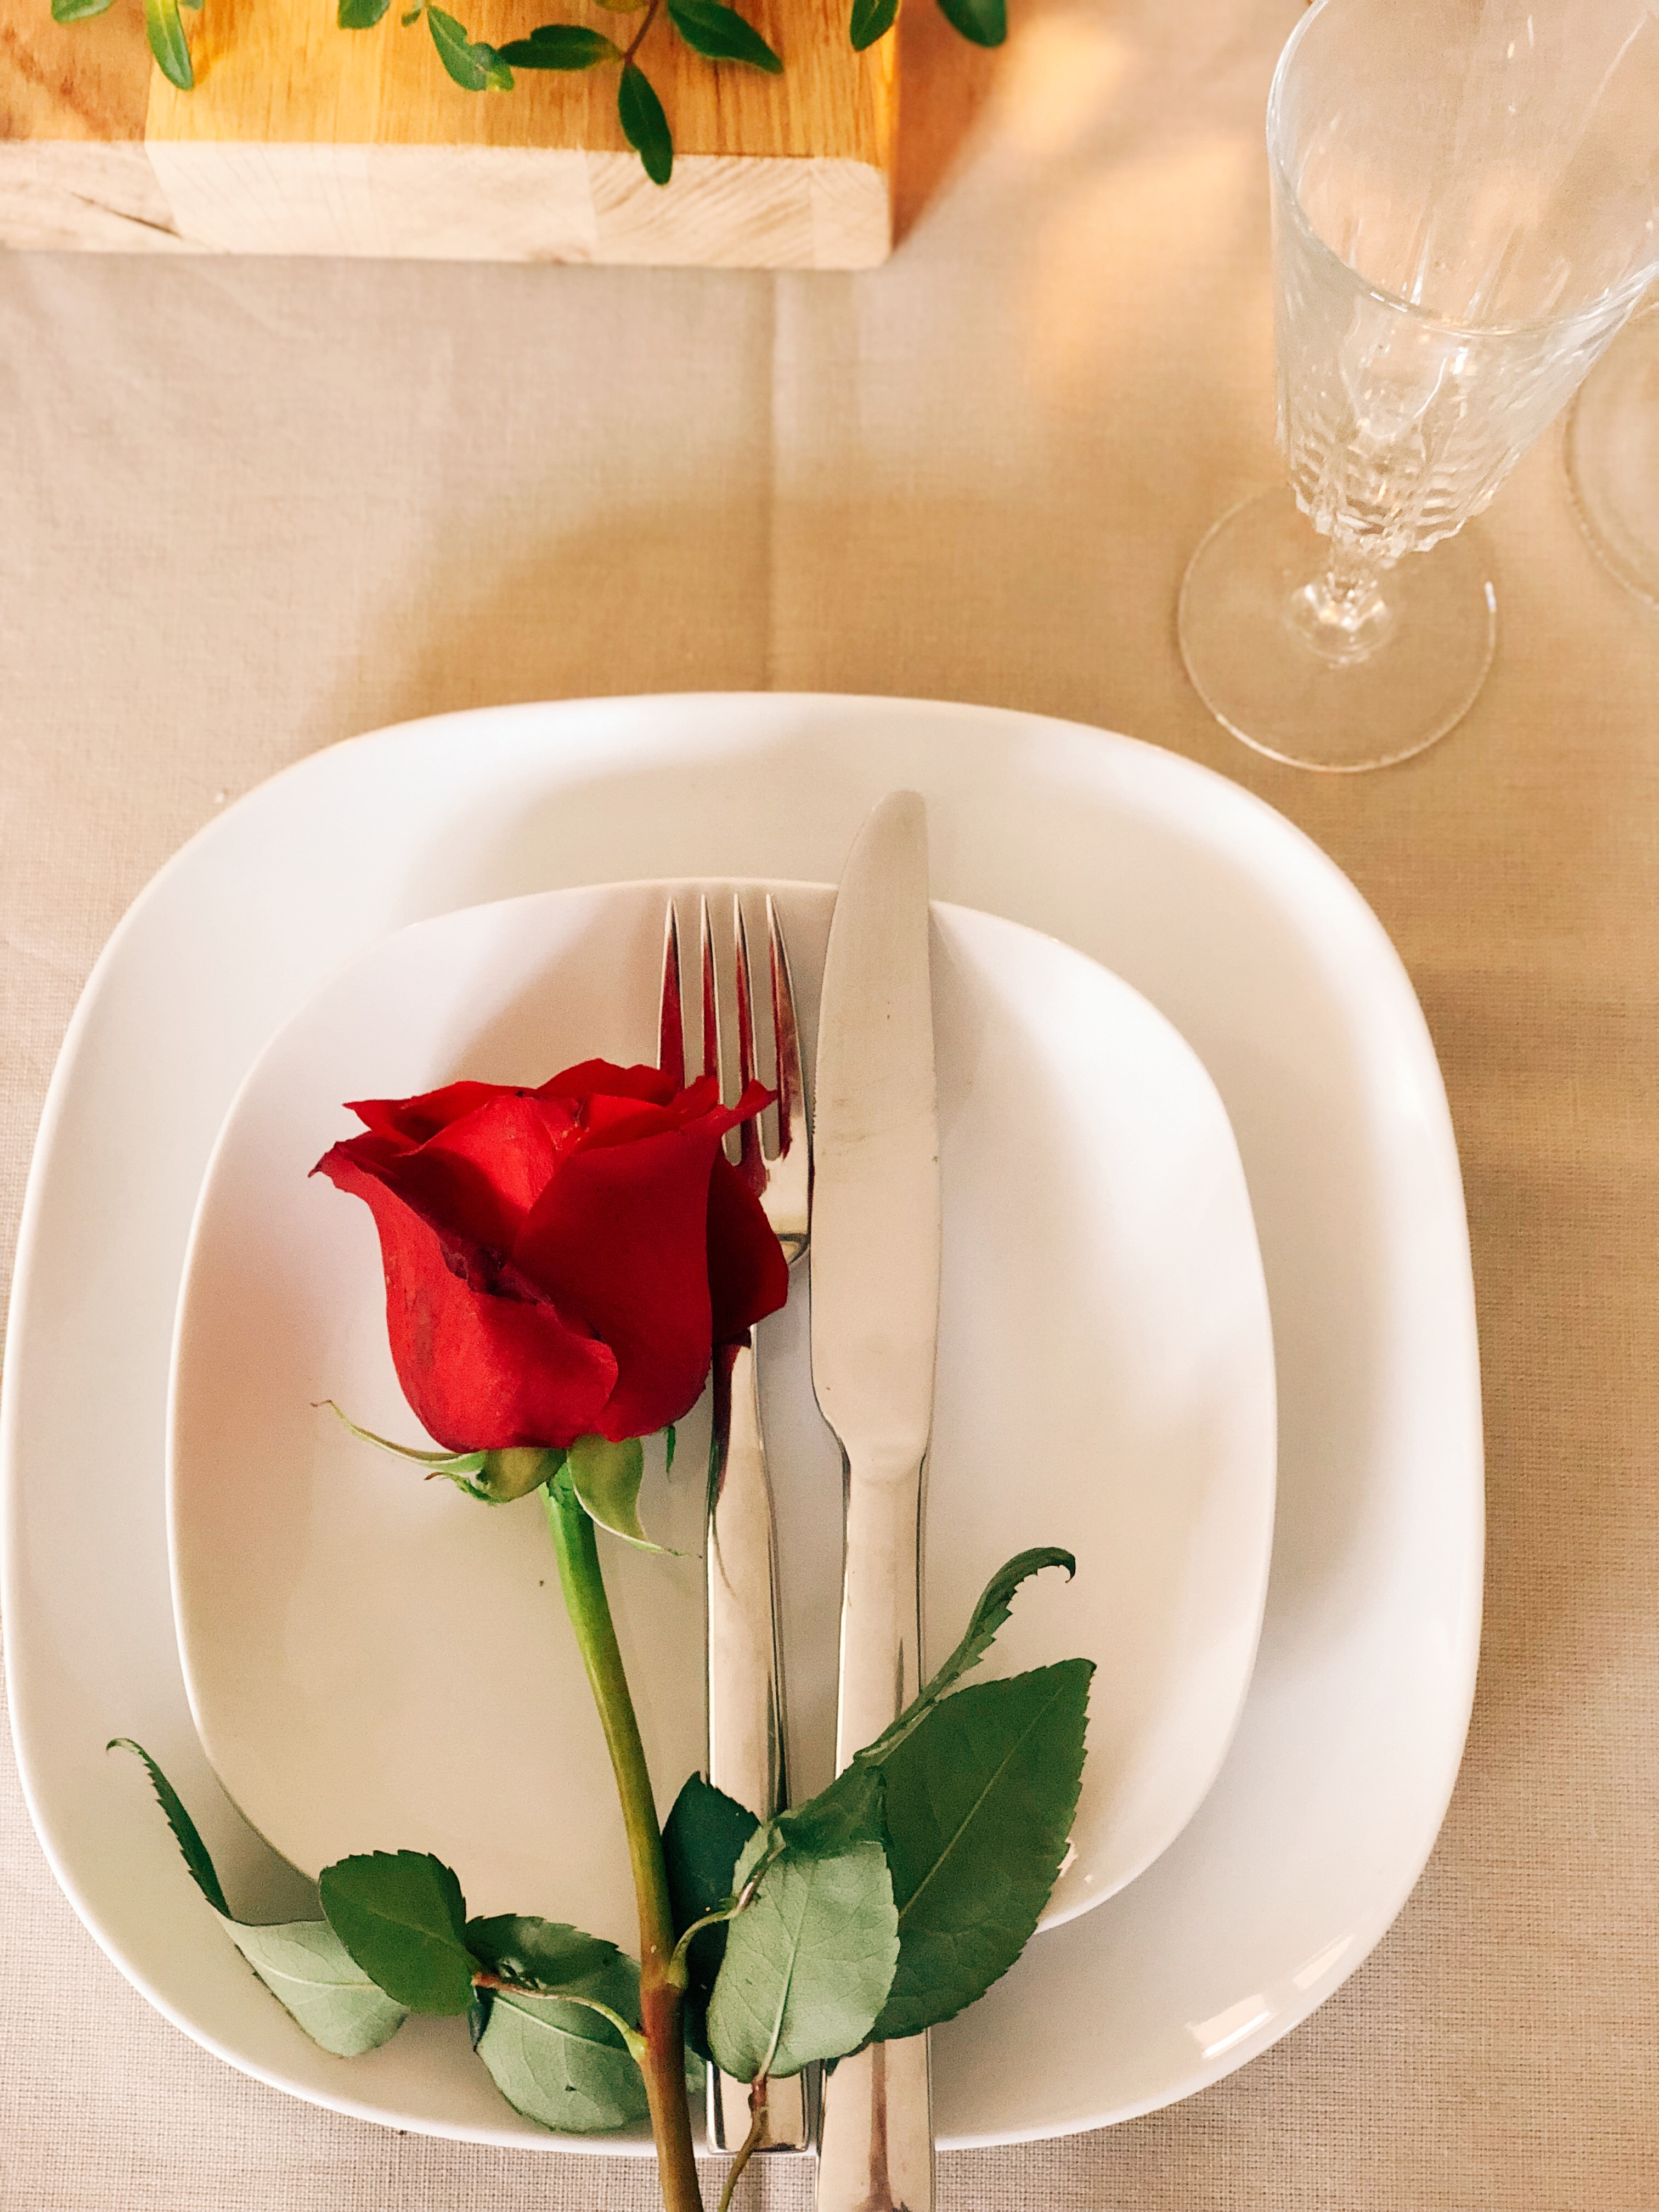 plates cutlery and a single red rose